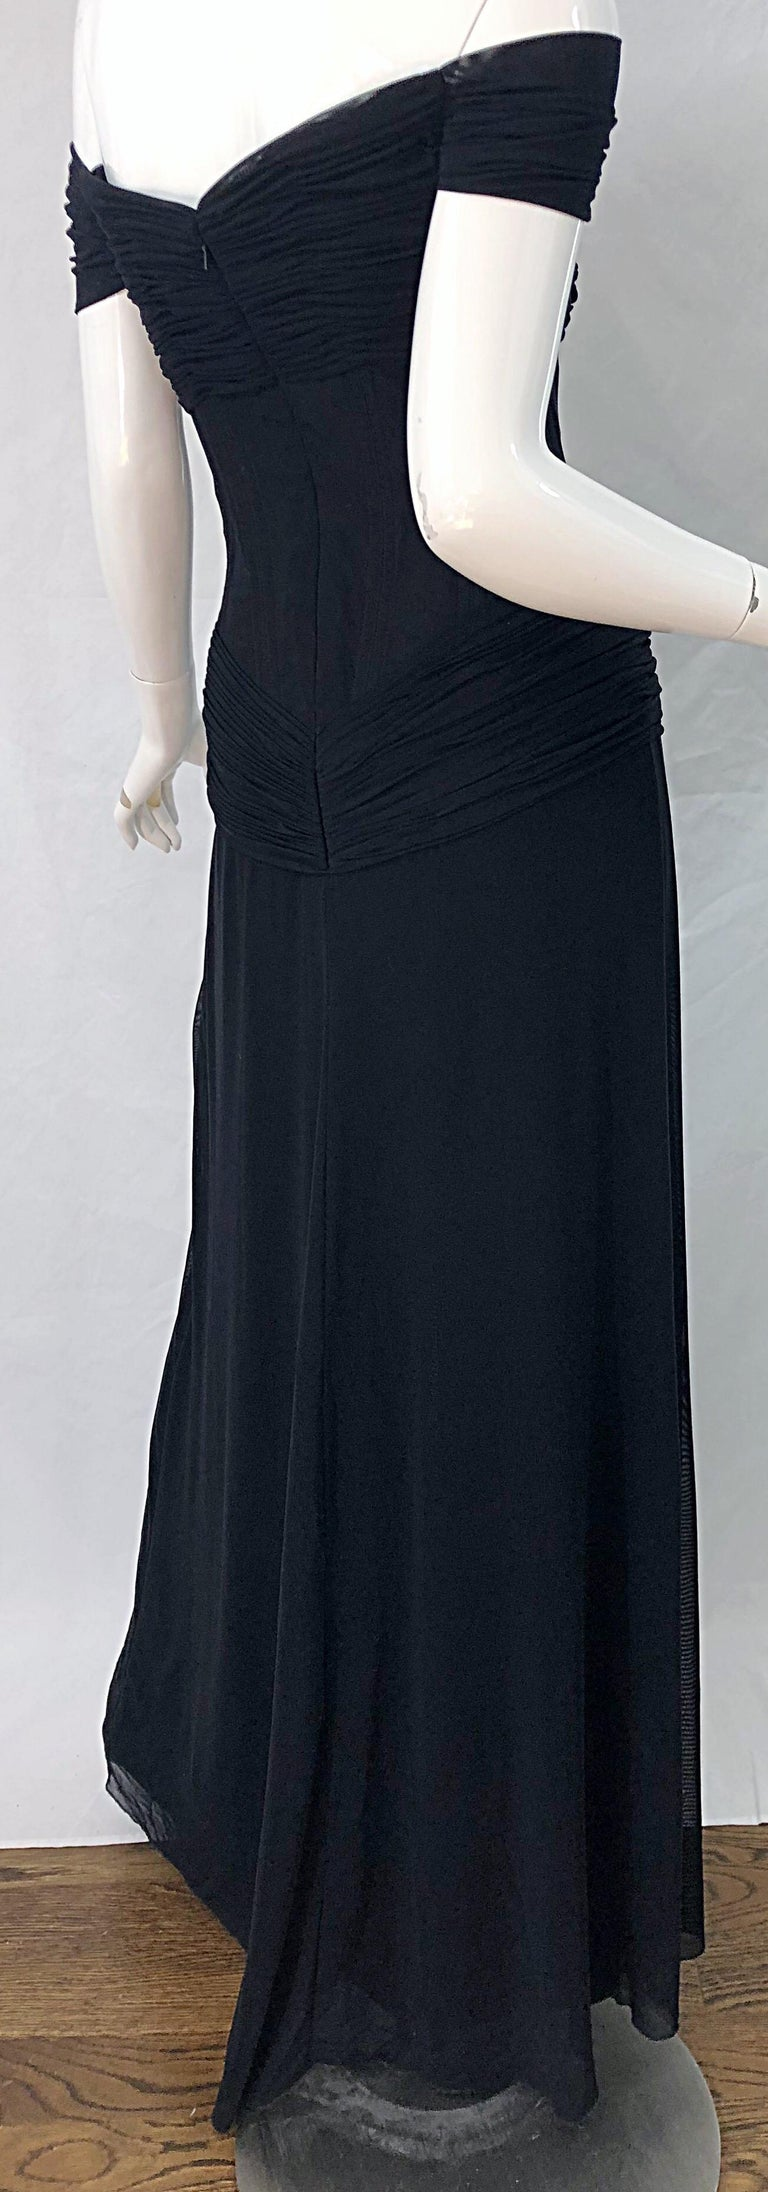 Julia Roberts Pretty Woman Vintage Vicky Tiel Couture Sz 12 Black 1980s Gown For Sale 8